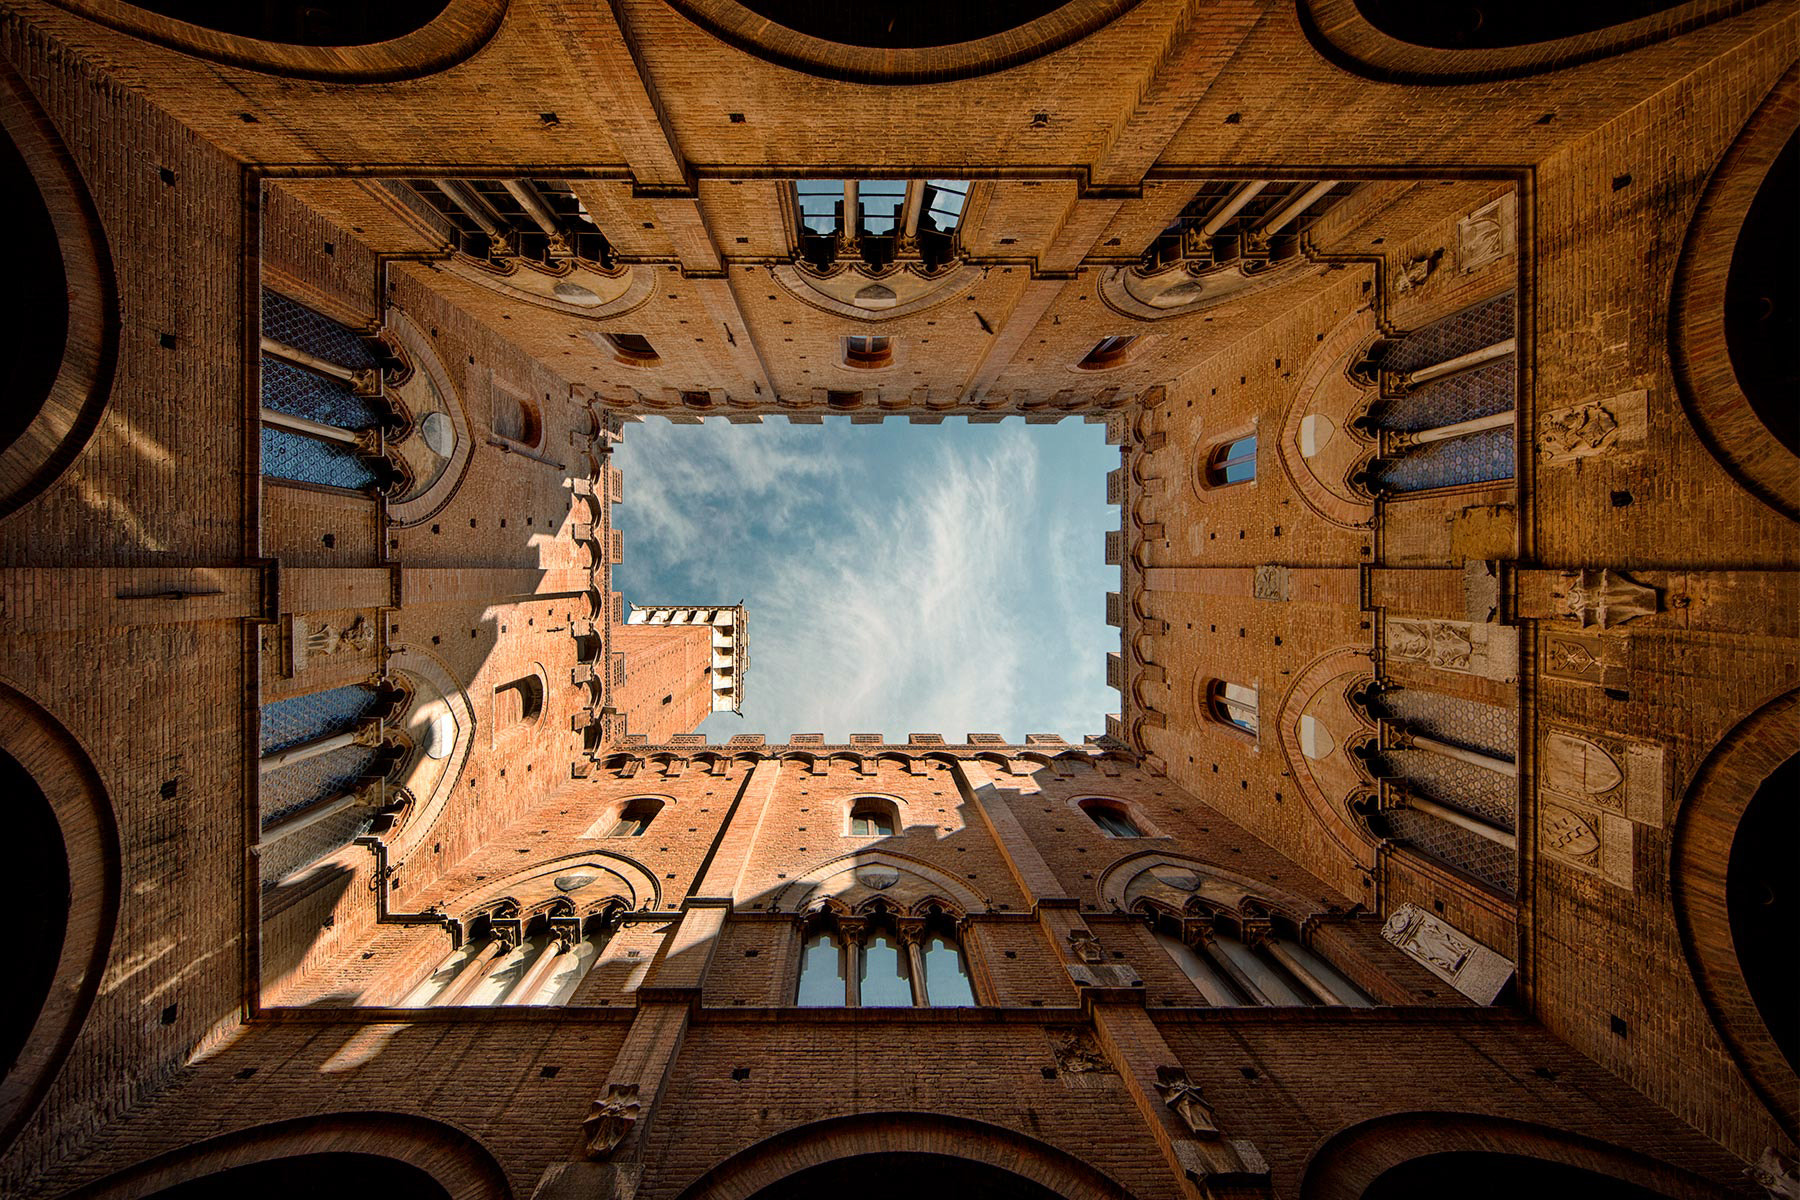 Photograph Palazzo Pubblico Siena by Glenn Meling on 500px